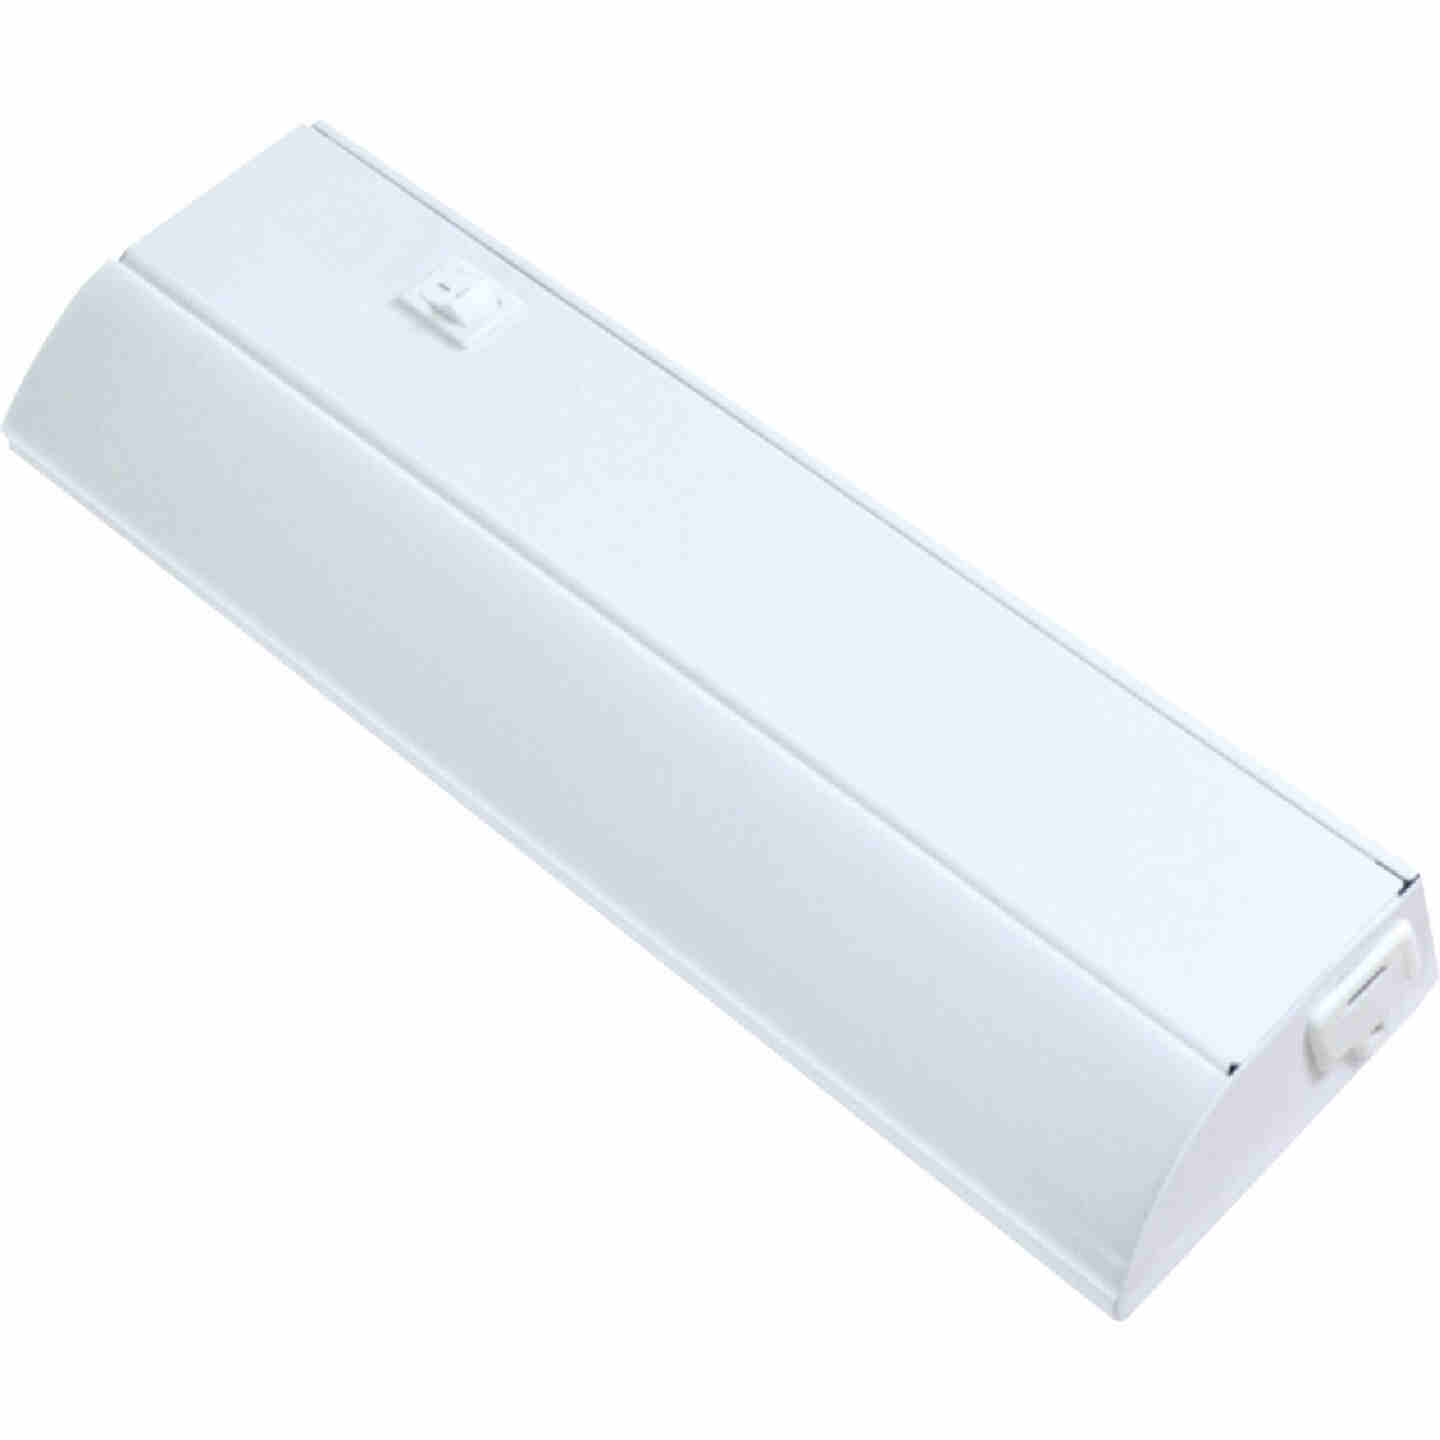 Good Earth Lighting  12 In. Direct Wire White LED Under Cabinet Light Bar Image 1